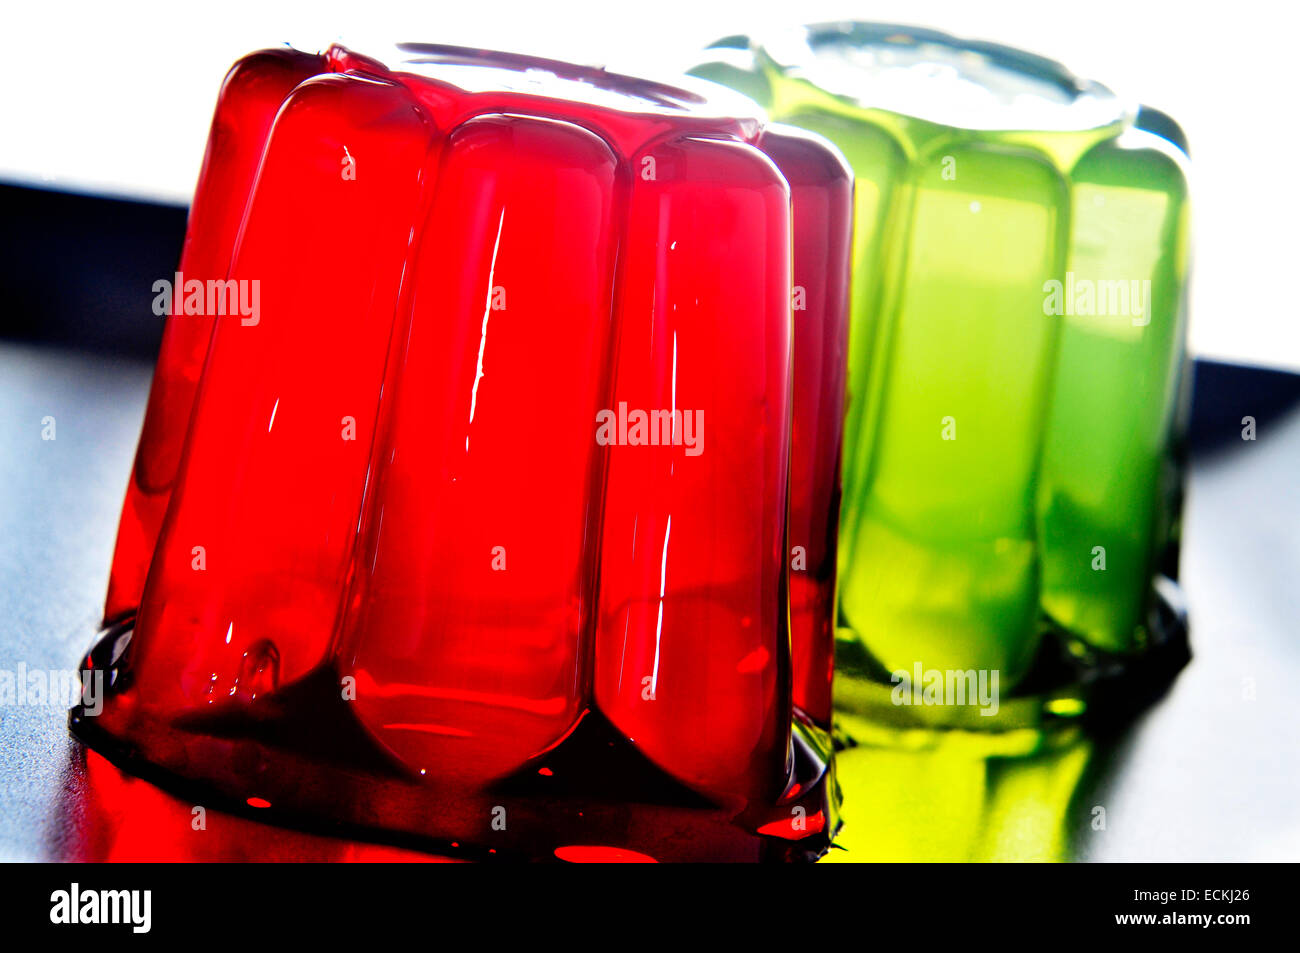 closeup of a plate with refreshing gelatin desserts of different flavors and colors - Stock Image